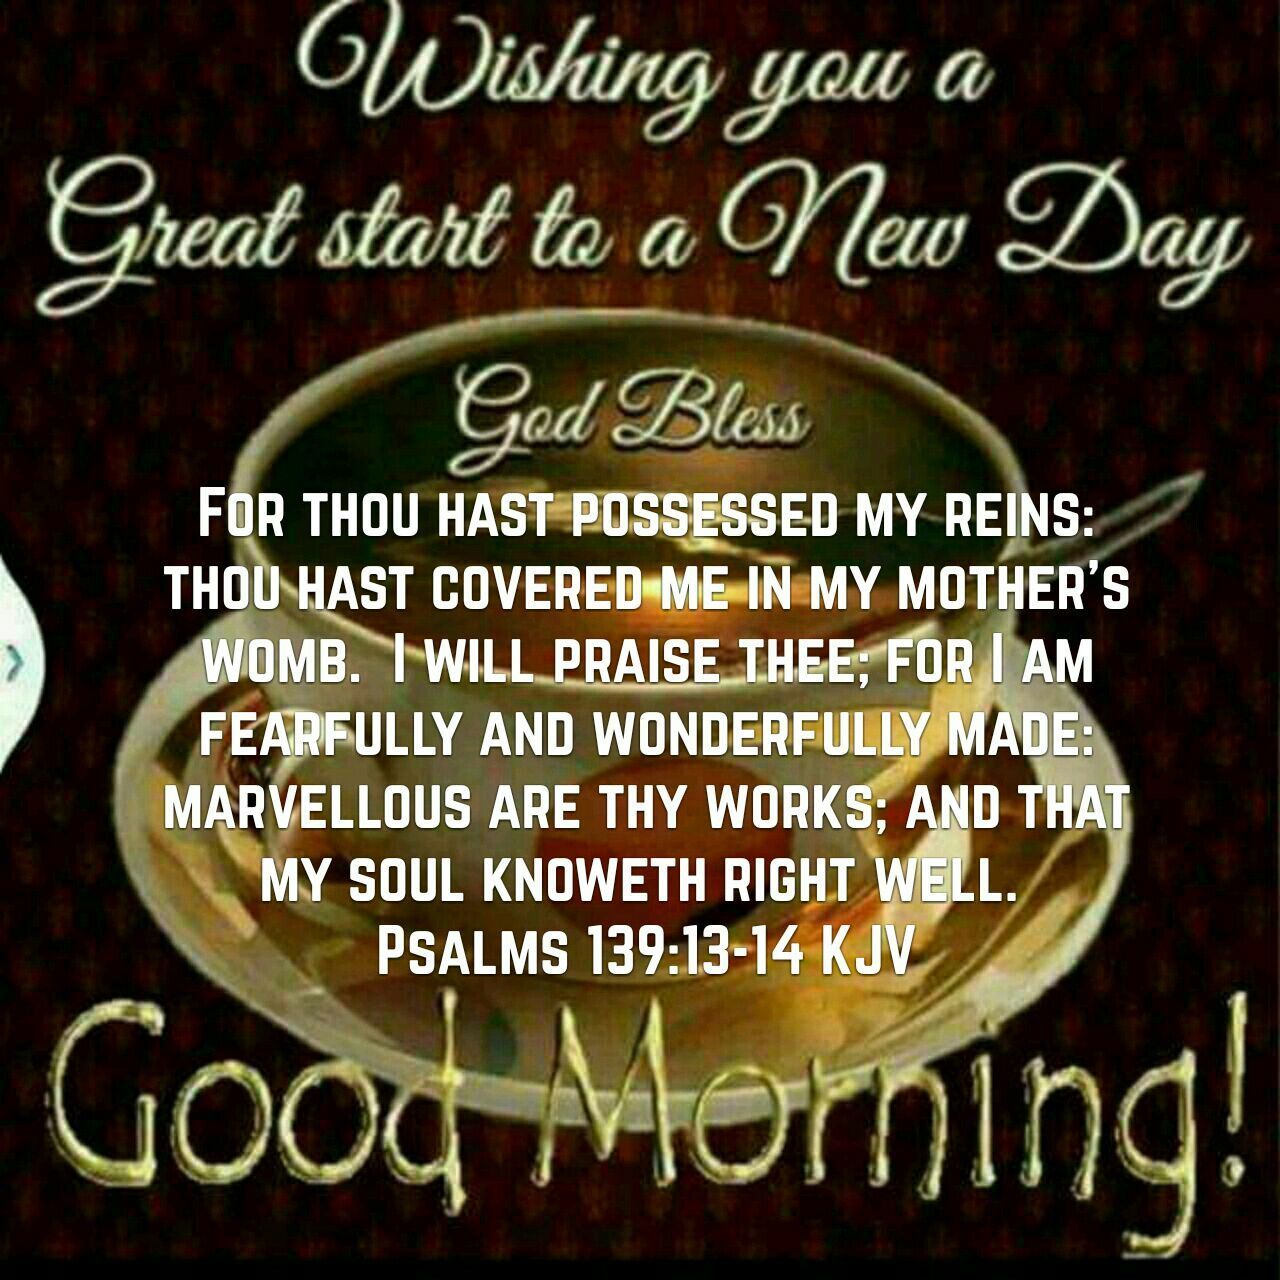 Fancy Daily Bible Morning Good Christian Blessings Pin By Claudia London On Praise Pinterest Morning Prayers Bible Verses About Blessings Prosperity Favor Bible Verses About Blessings inspiration Bible Verses About Blessings